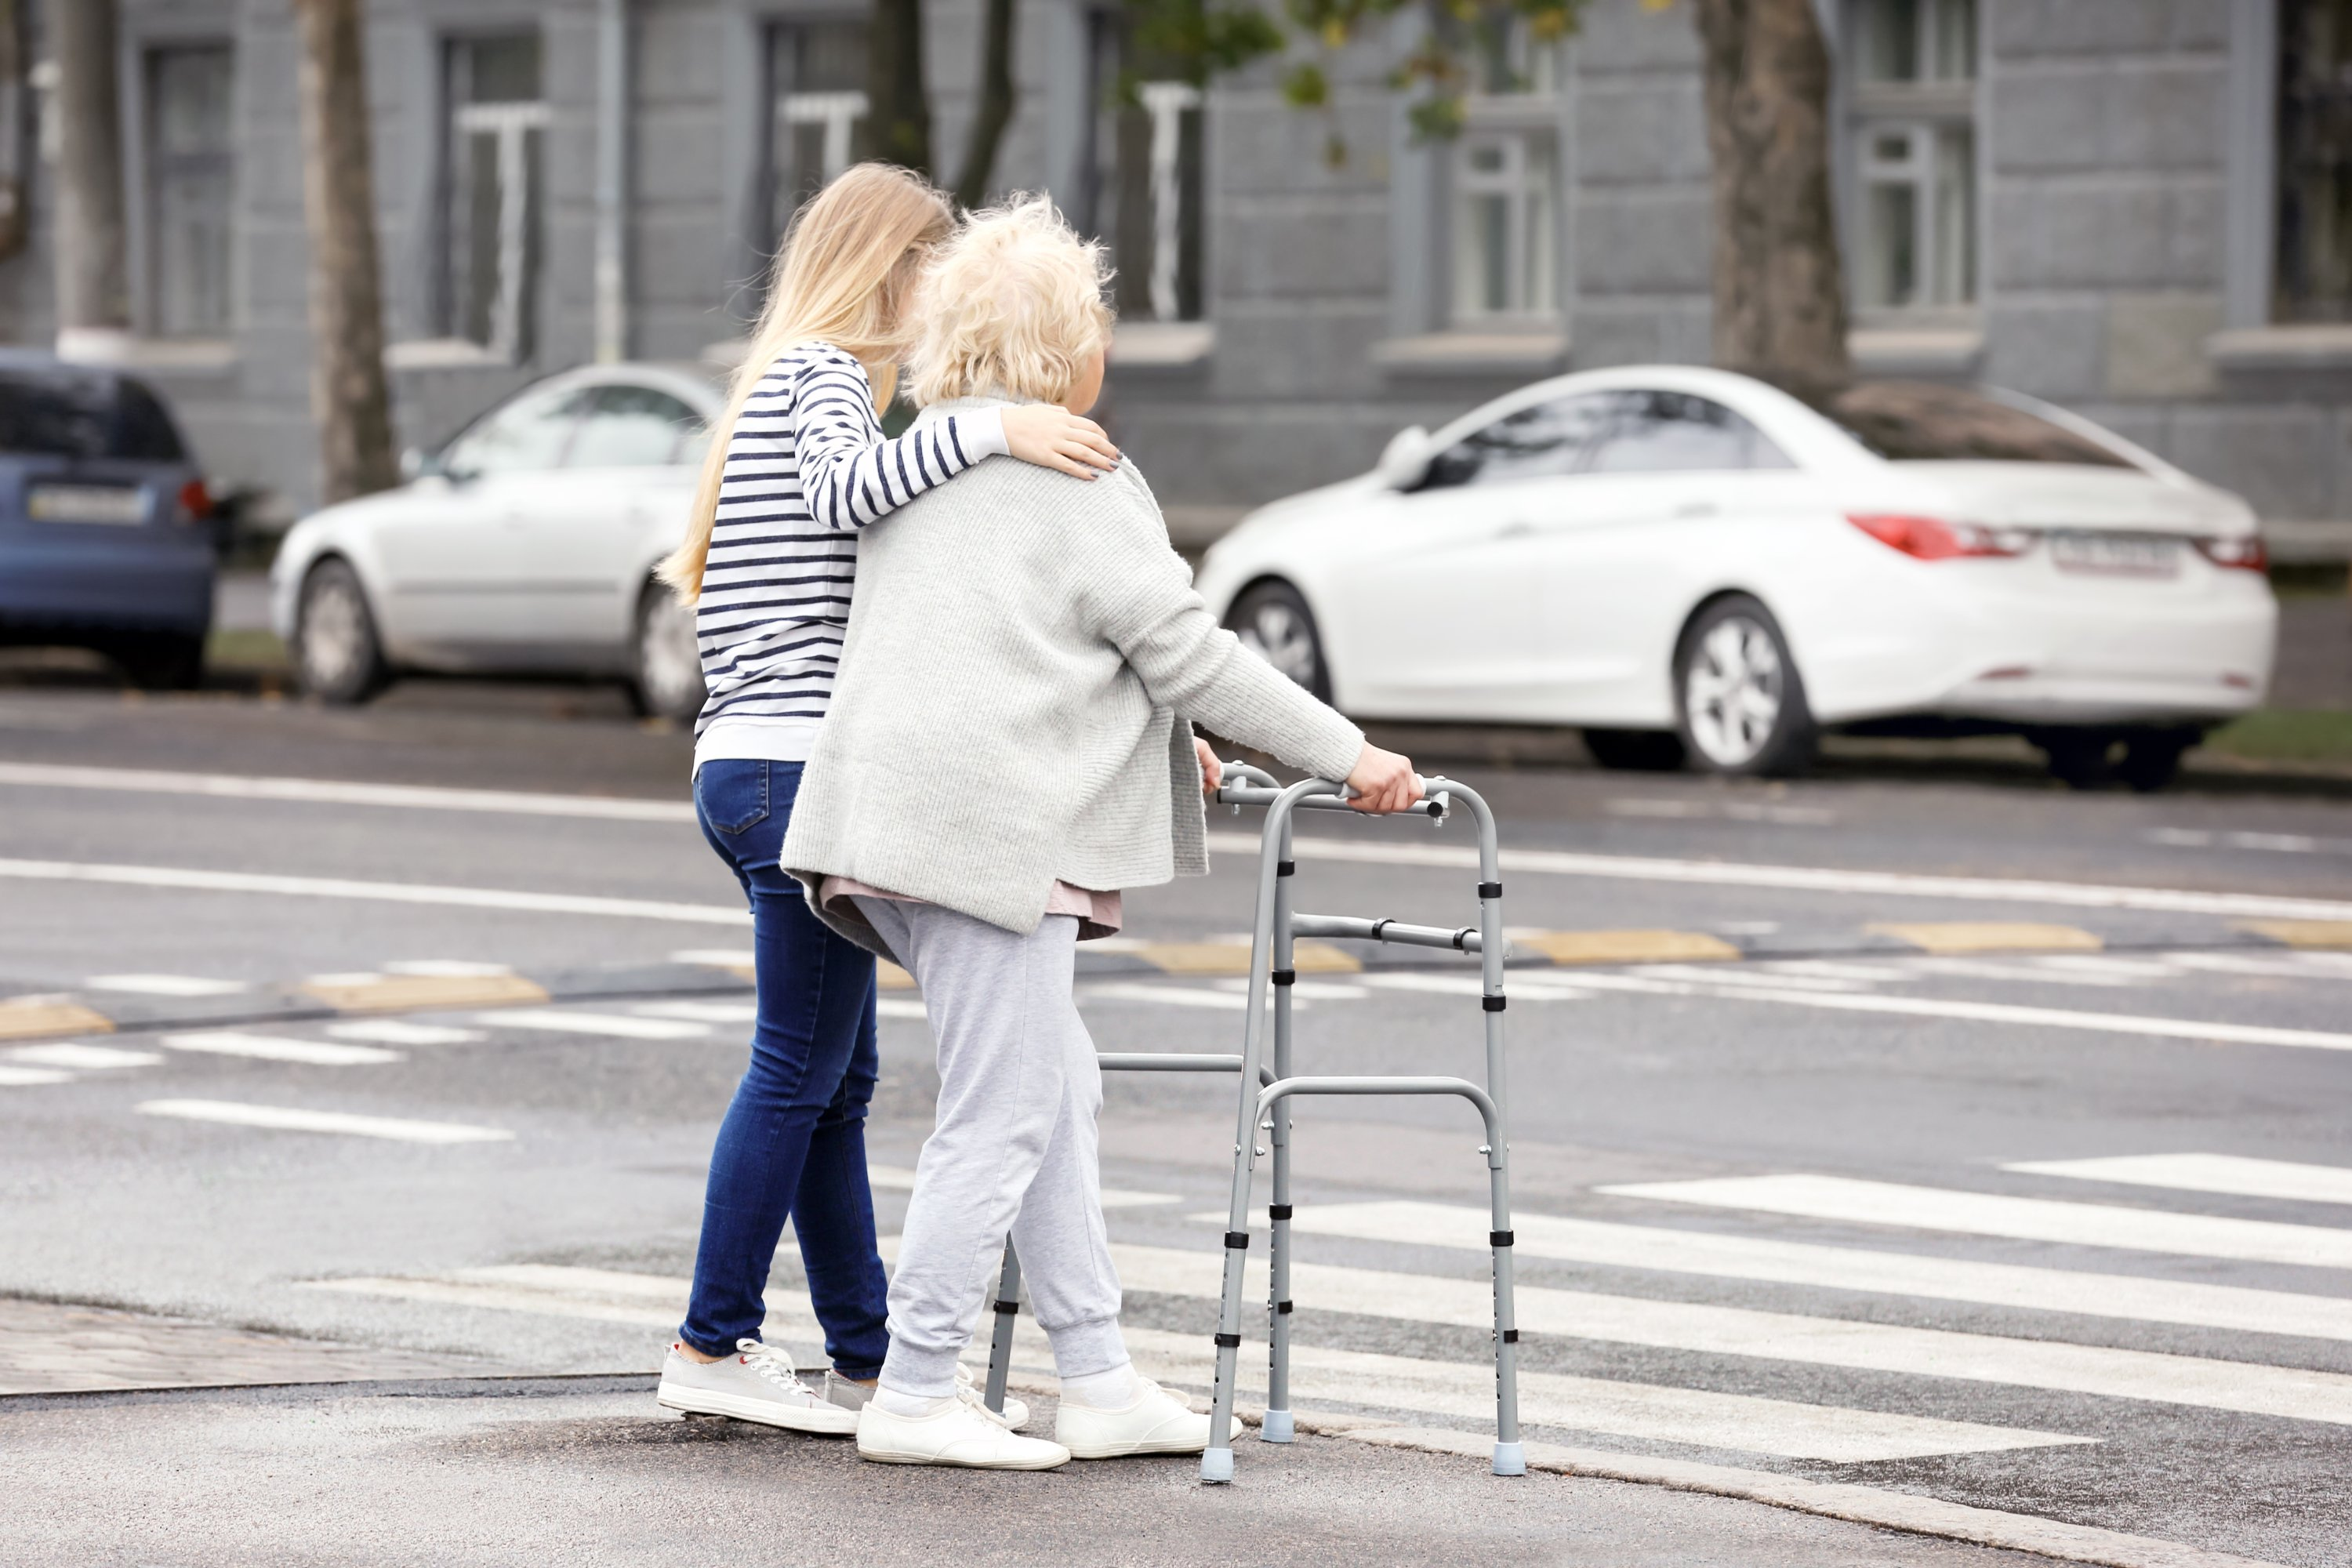 A young woman helps her elderly grandmother cross the road. (Shutterstock Photo)